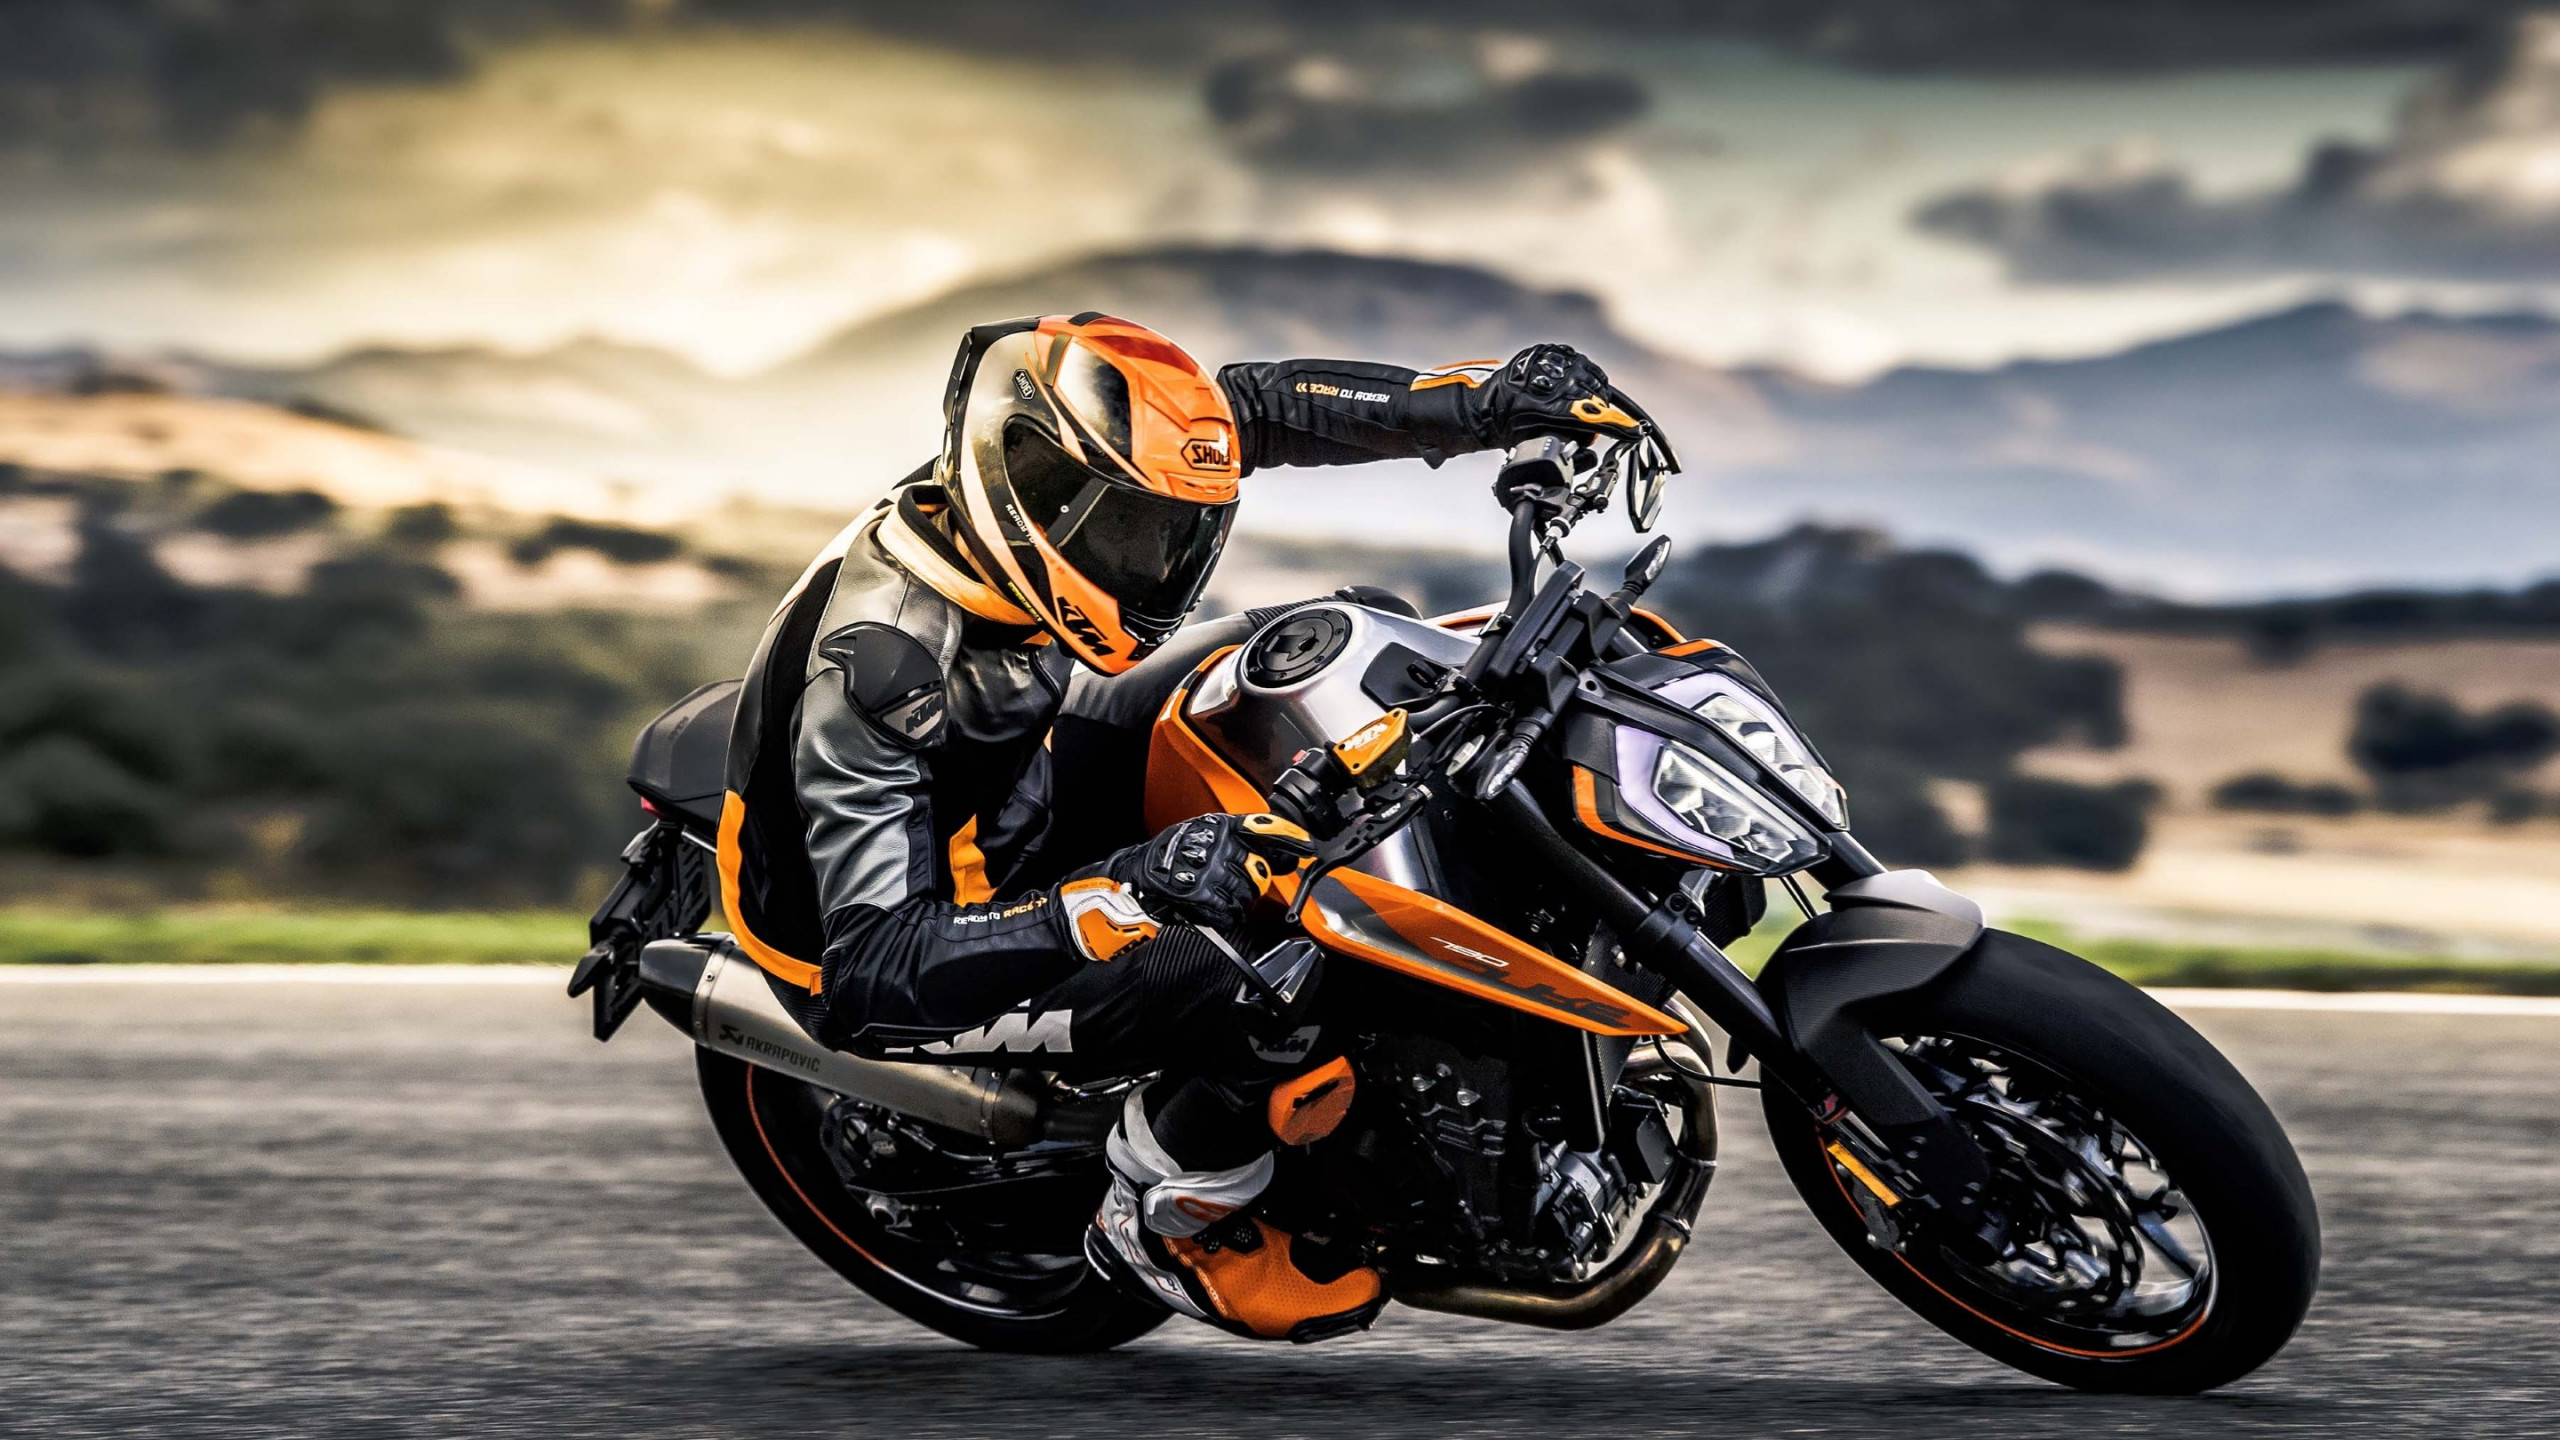 KTM 790 Duke wallpaper 2560x1440